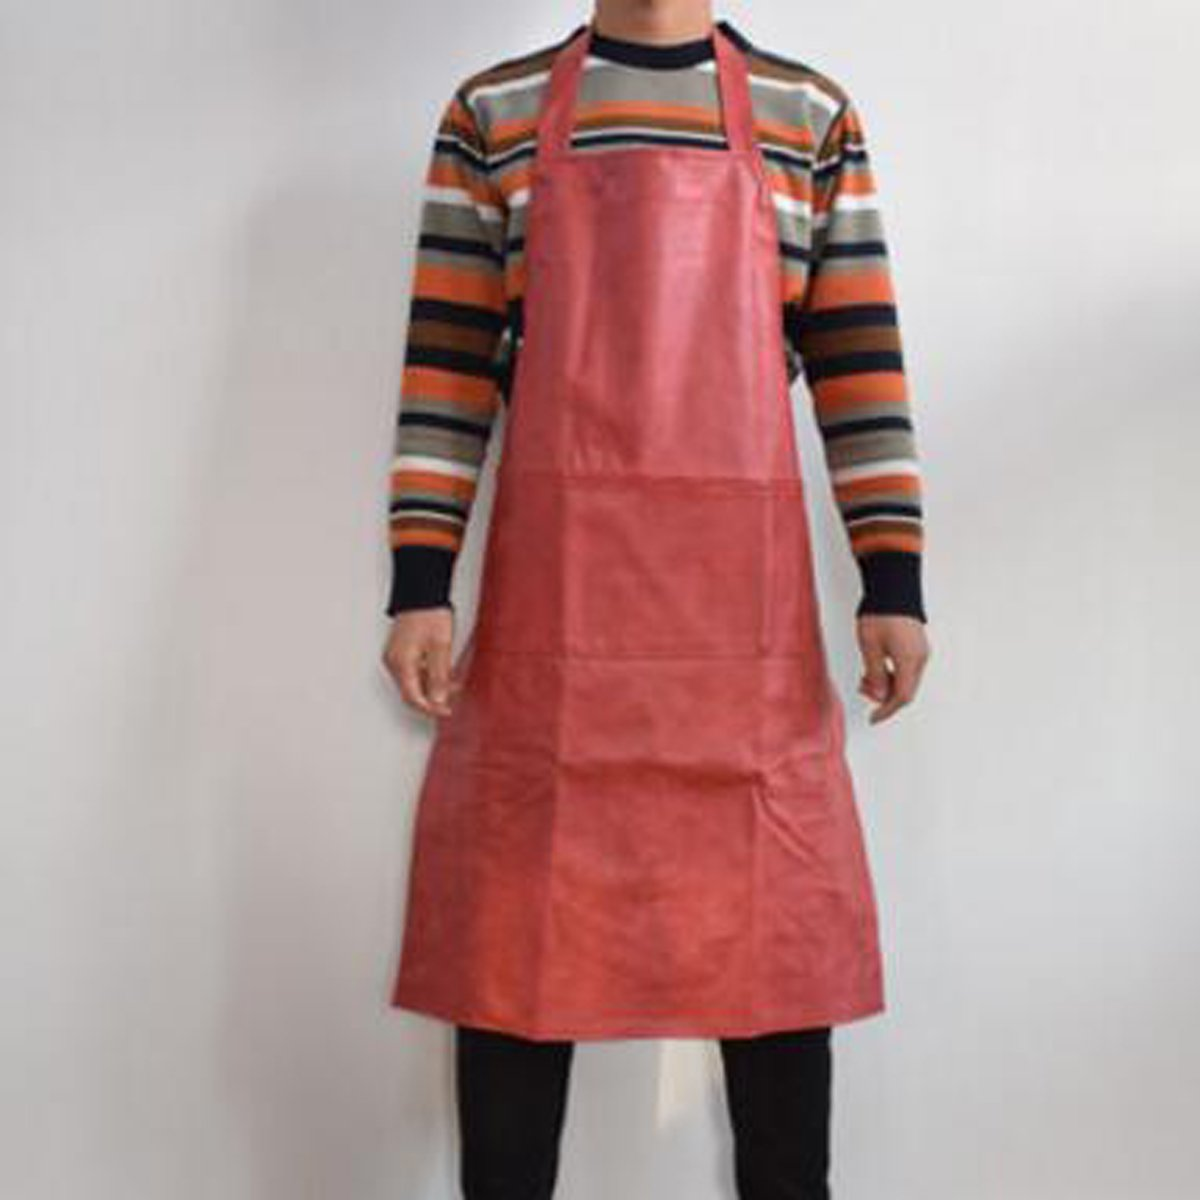 ZHIHUI Leather Apron Waterproof Anti-Oil Thicken Lengthen Apron Kitchen Barbecue Apron, 100*60Cm, Grey